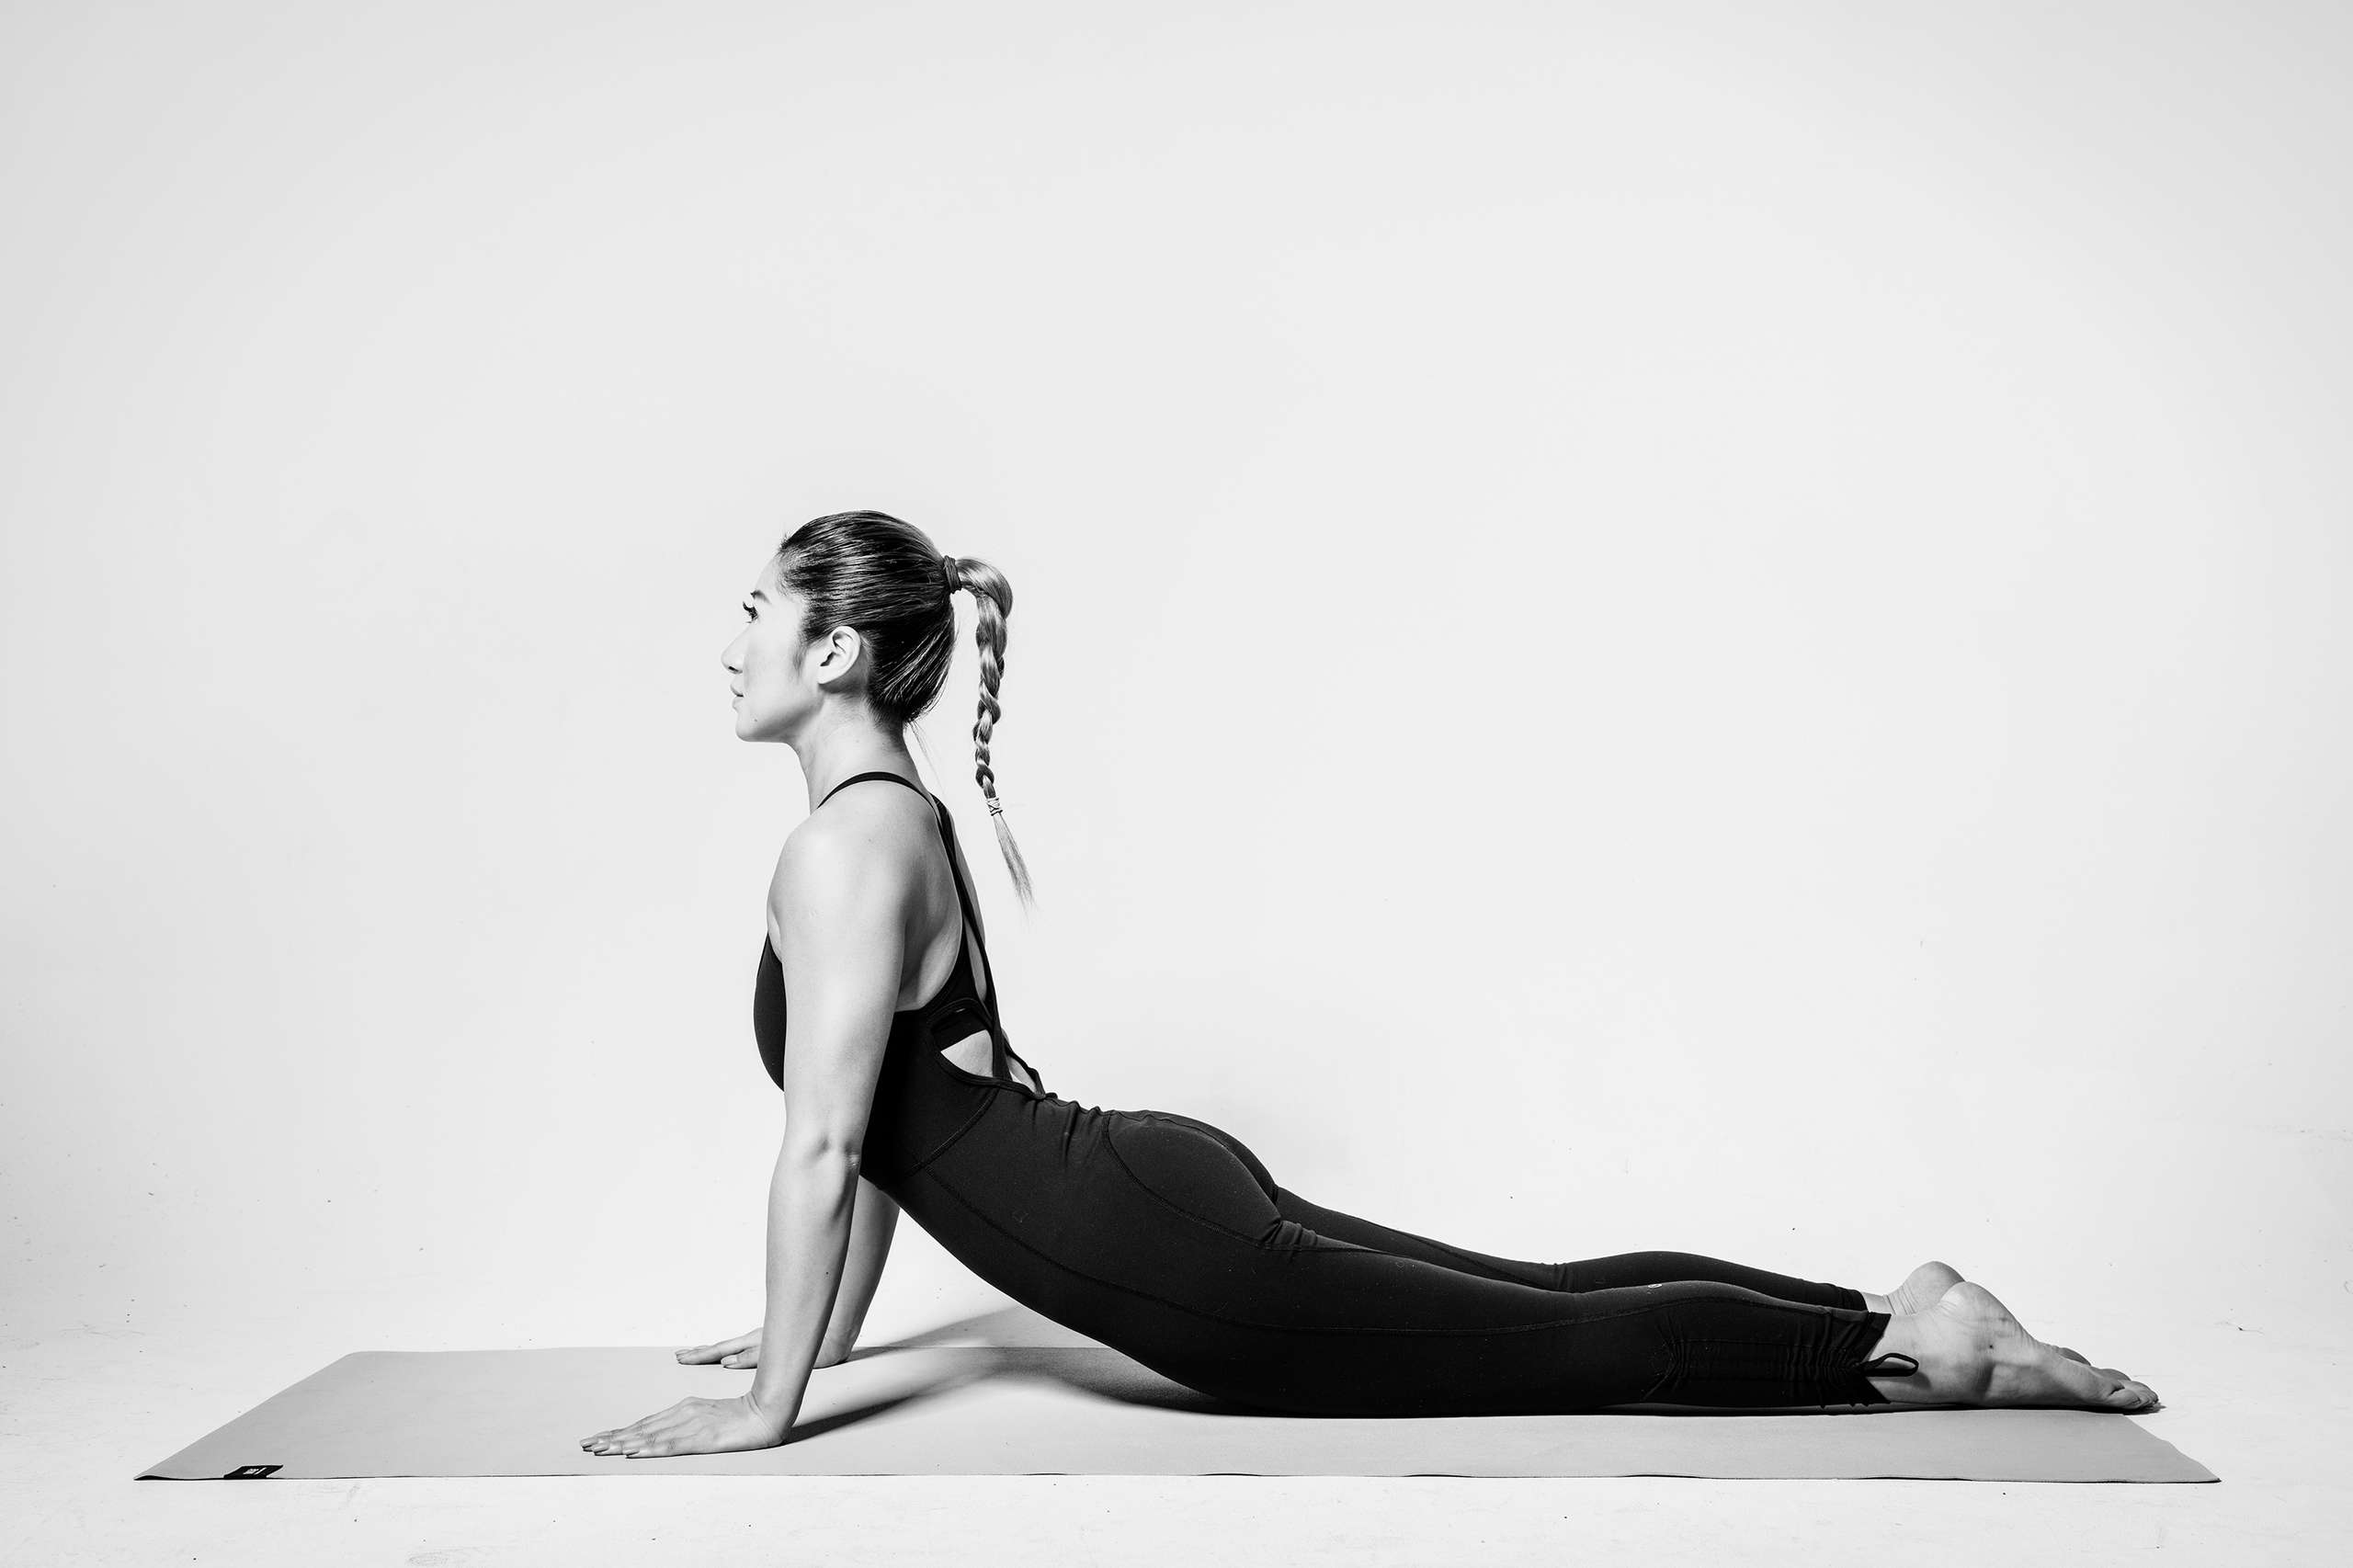 Ceci Lam pilates pose on a mat black and white